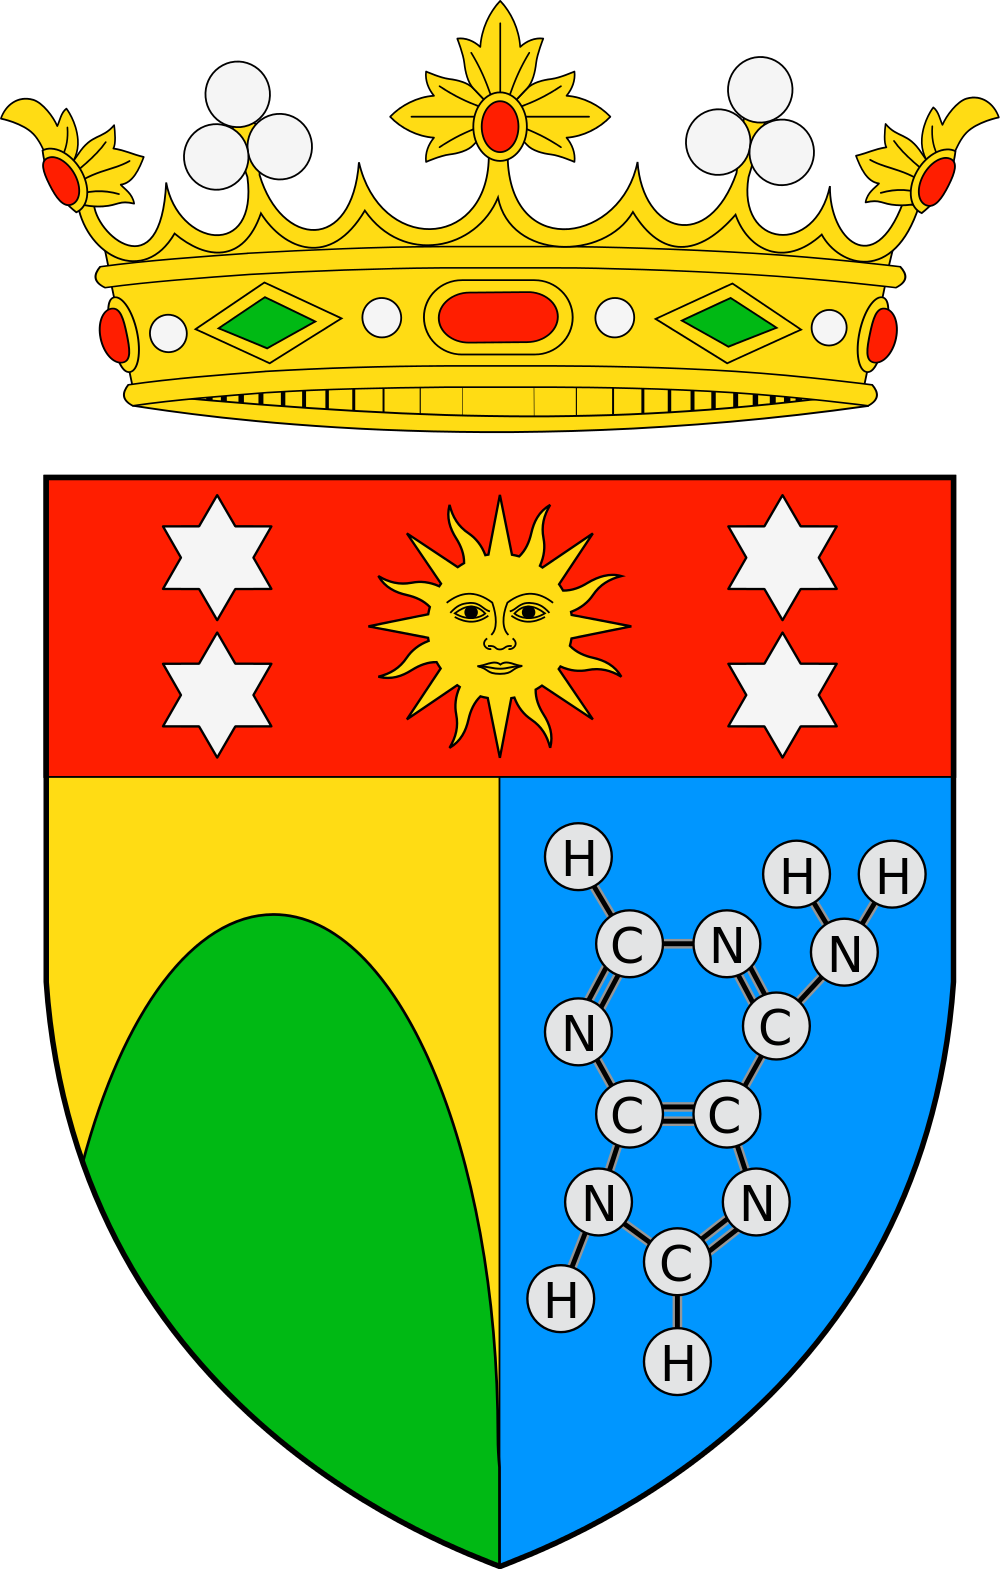 Scientific illustration in heraldry; the coat of arms of the Marquis d'Oró, showing a chemical diagram on the sinister side.